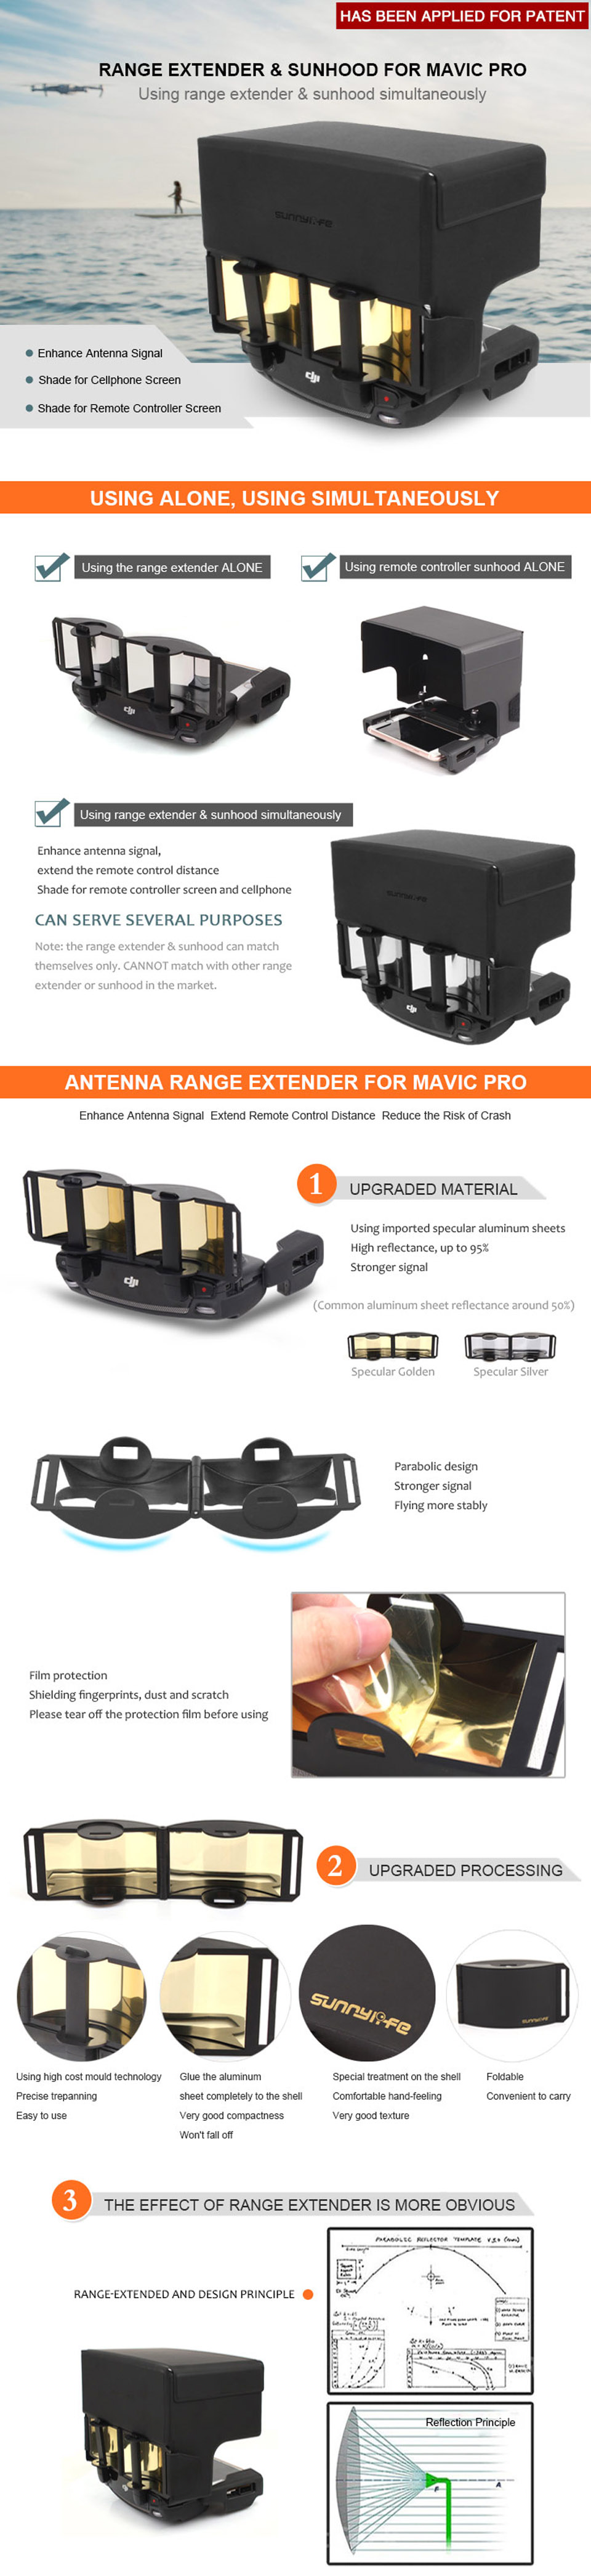 Antenna Range Extender and Remote Controller Sunhood Sunshade Simultaneous Usage for DJI MAVIC PRO and Spark